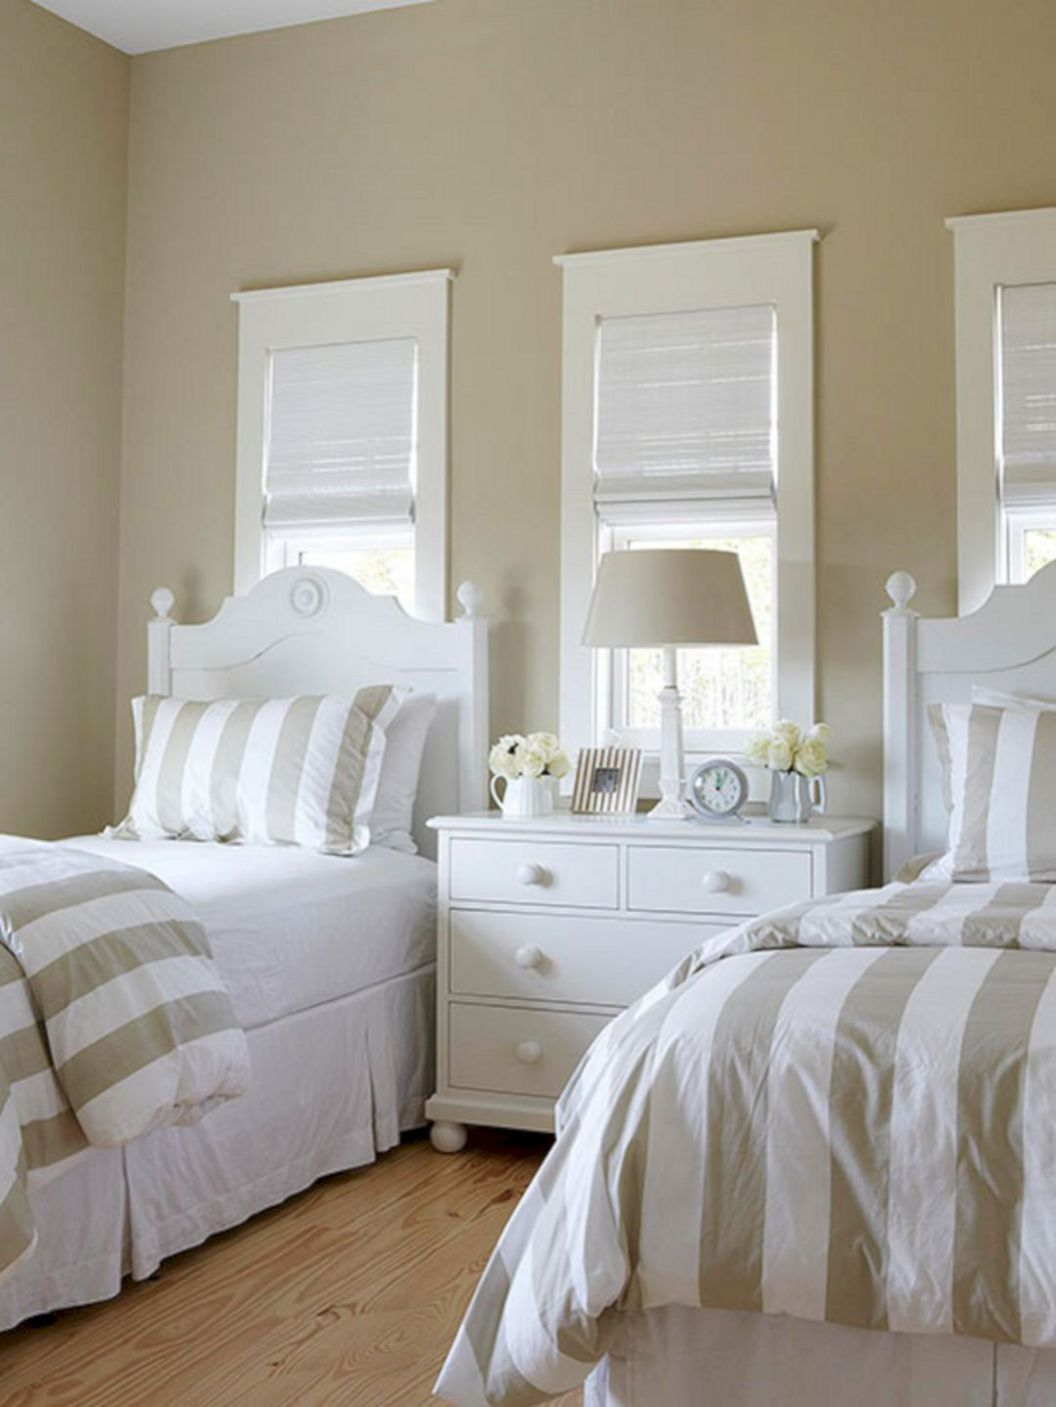 50+ Best Twin Bed Ideas For Small Bedroom 21   Shared ...